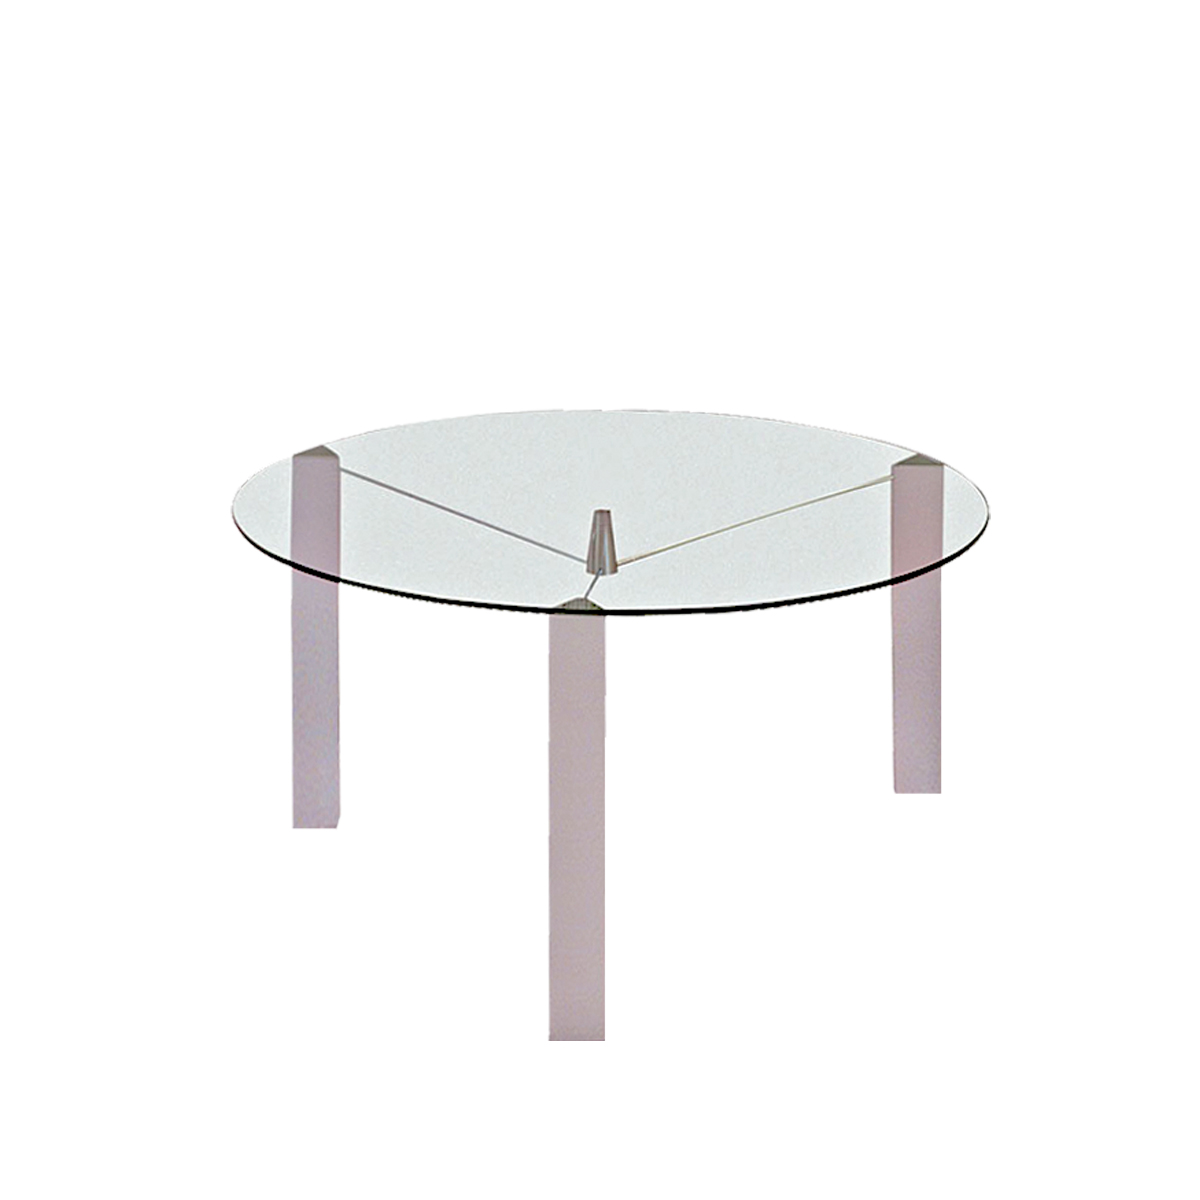 Occhio round glass dining table 1360mm clear glass for Round glass dining table